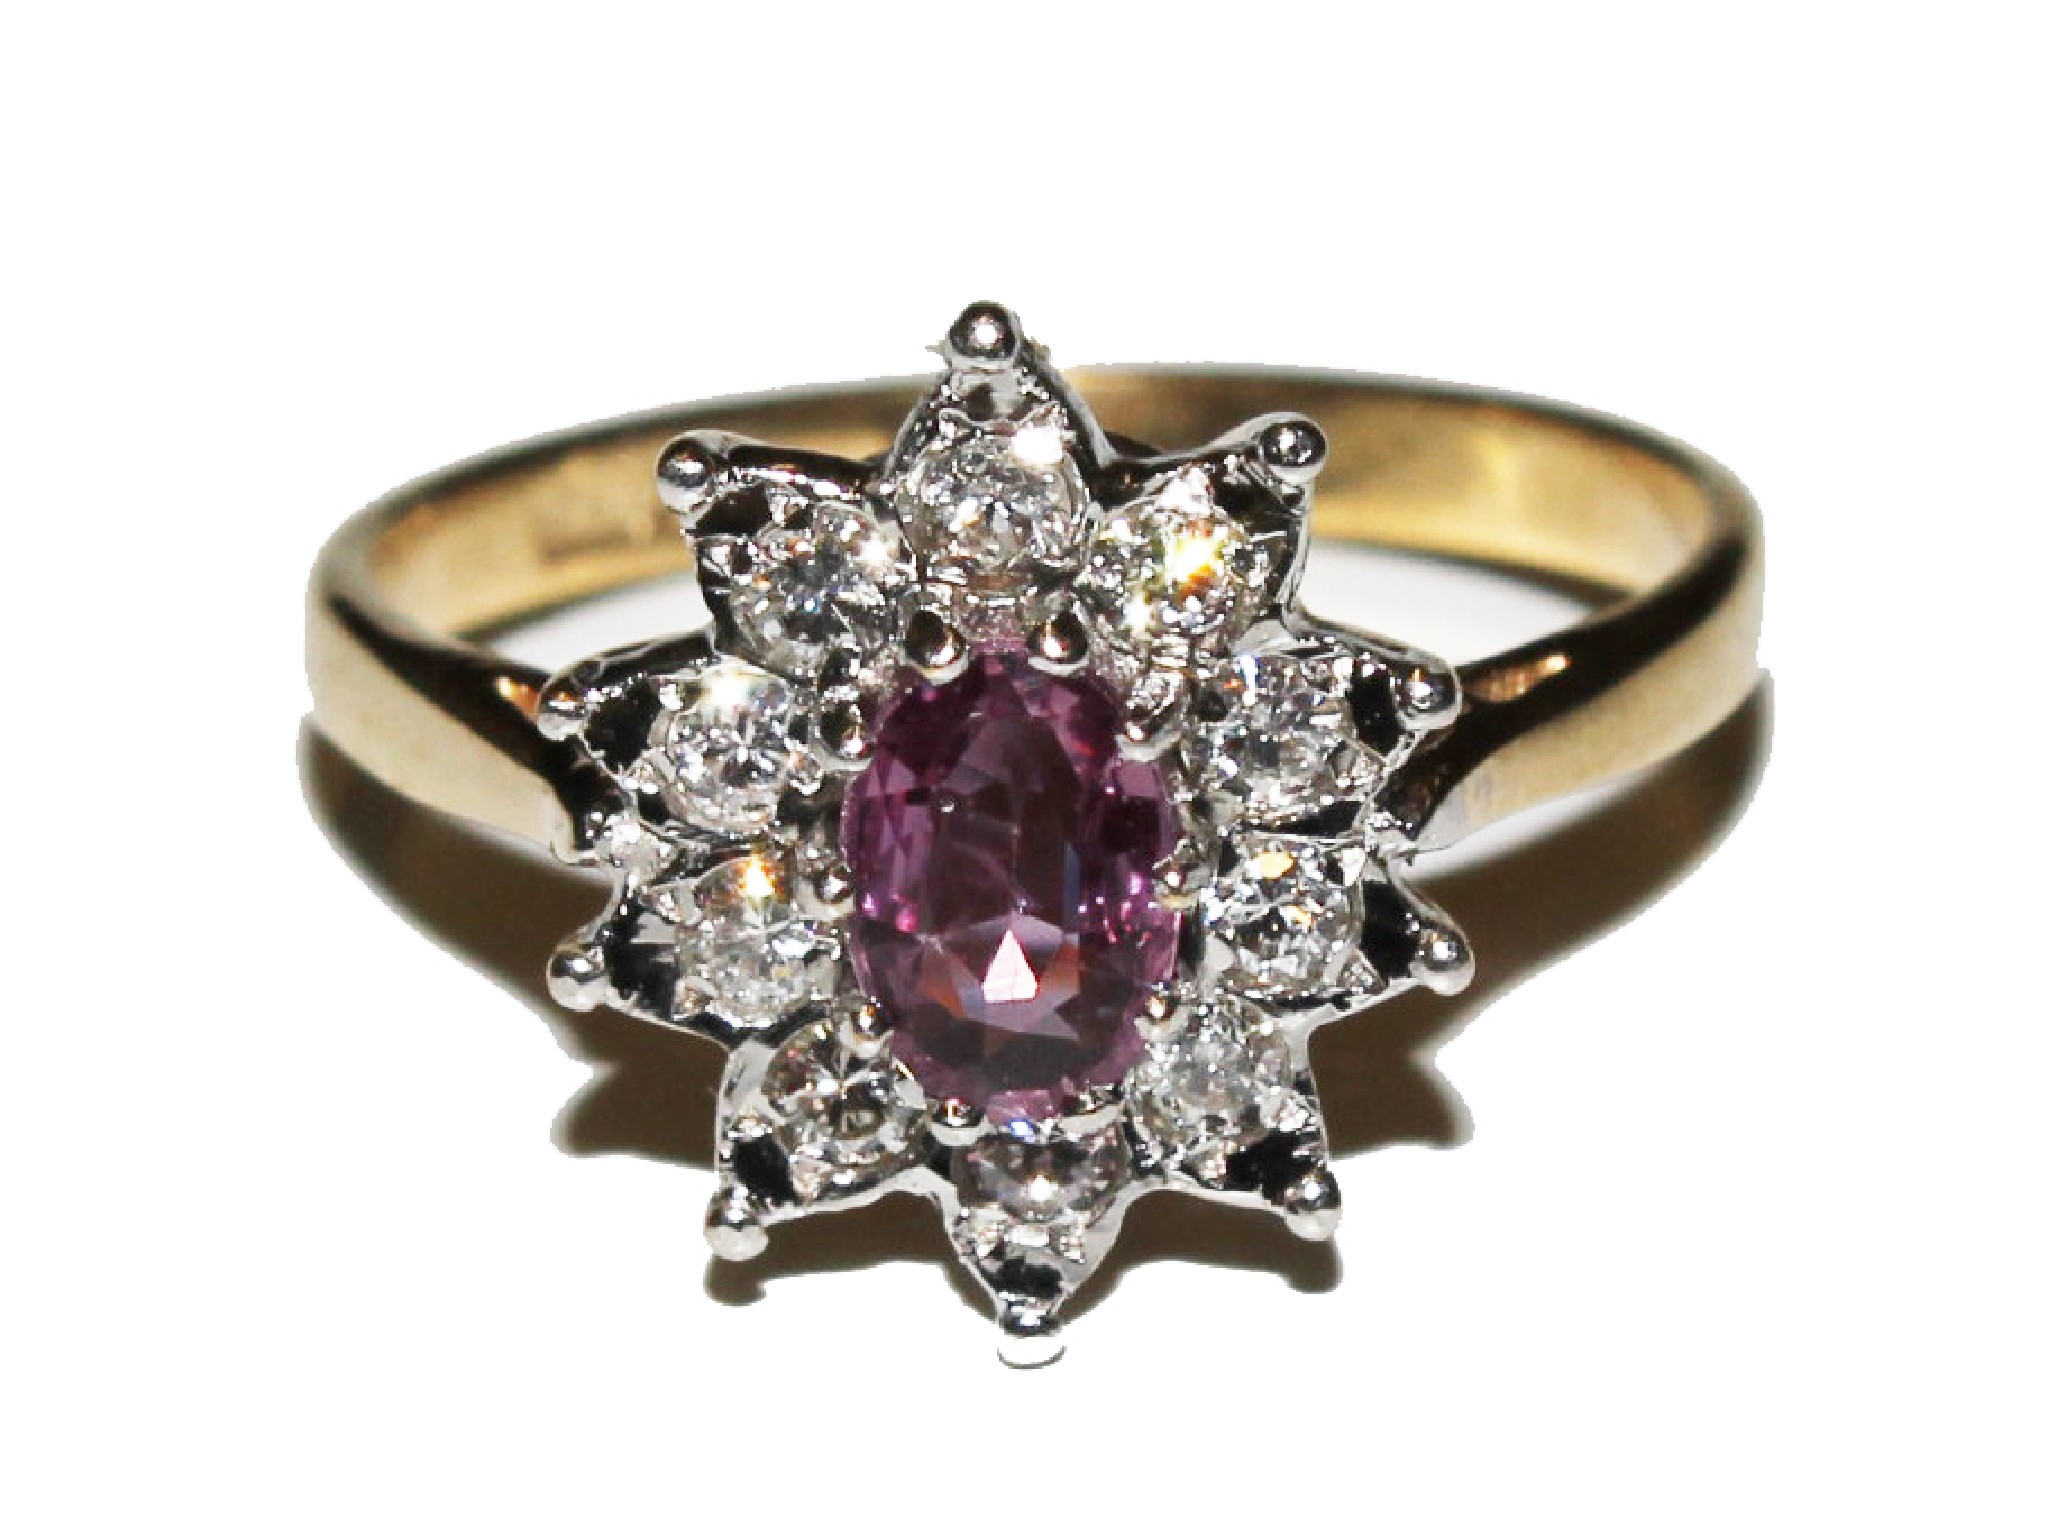 A 9 carat gold, ruby and diamond ring